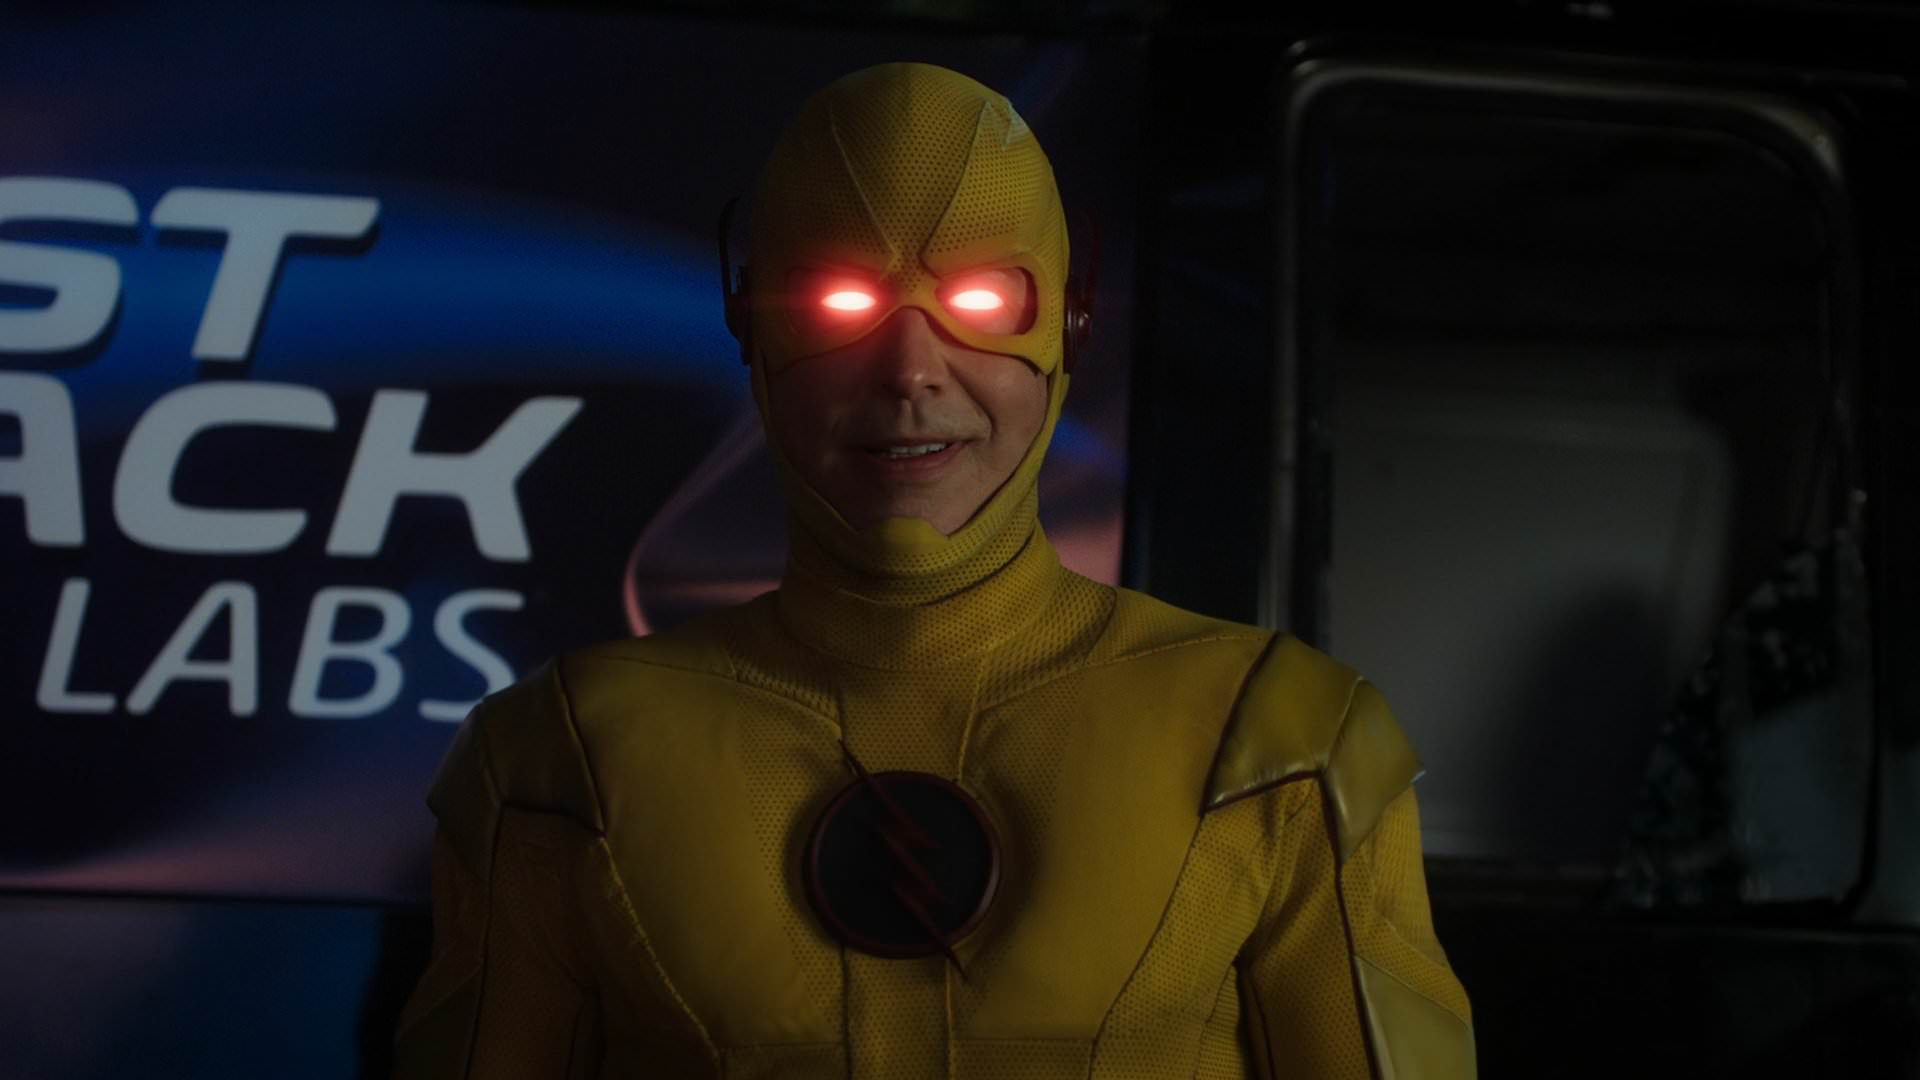 http://img3.wikia.nocookie.net/__cb20141210120254/arrow/images/b/b3/Reverse-Flash.png